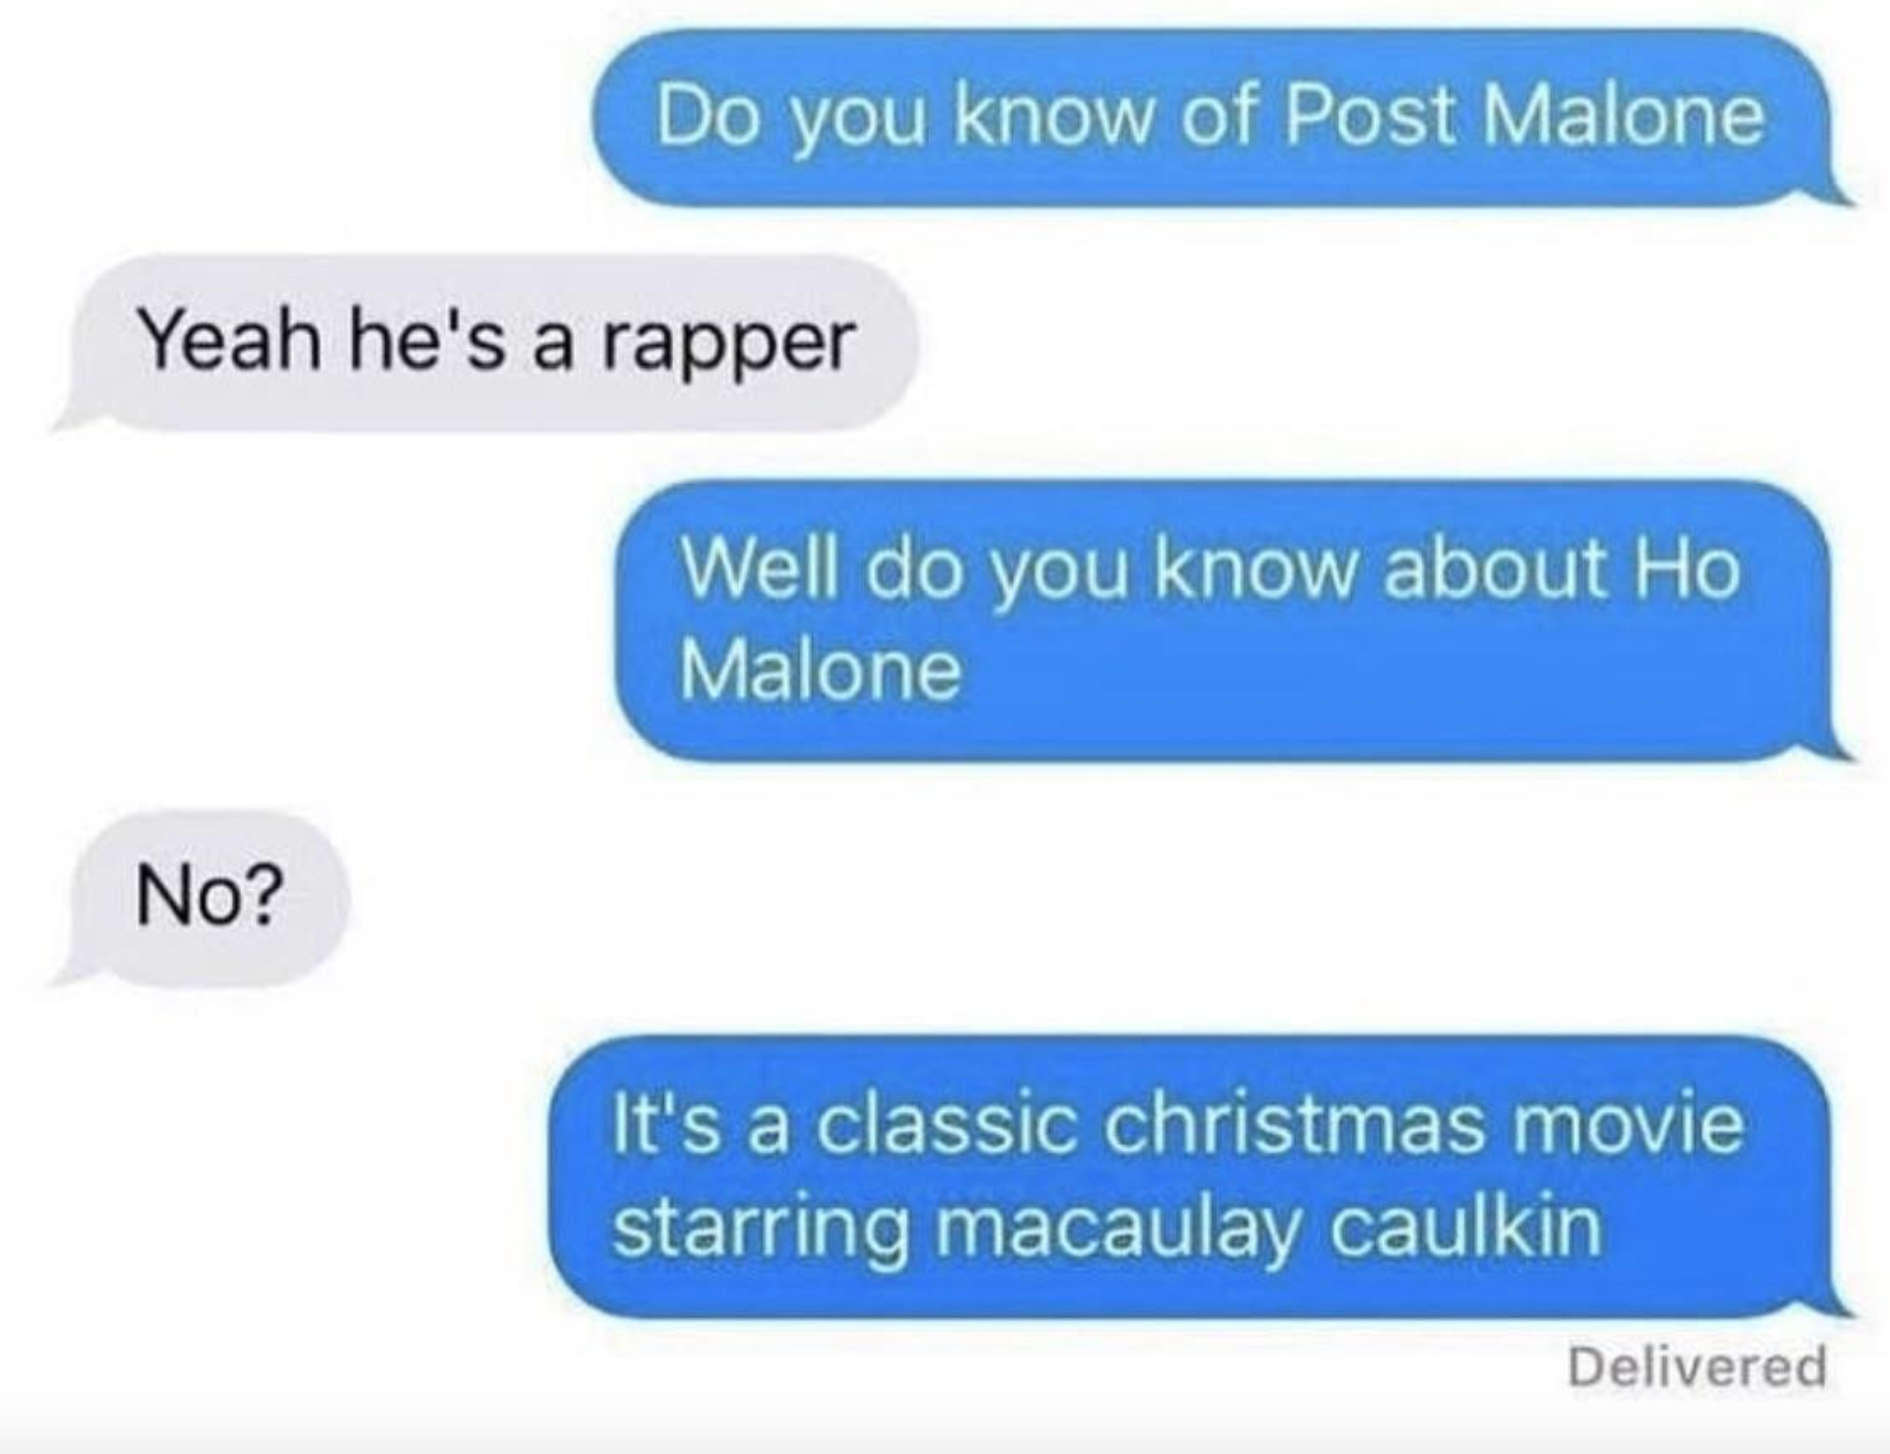 """A text thread that goes: """"Do you know of Post Malone?"""" """"Yeah he's a rapper"""" """"Do you know about Ho Malone?"""" """"No"""" """"It's a Christmas movie starring Macaulay Culkin"""""""